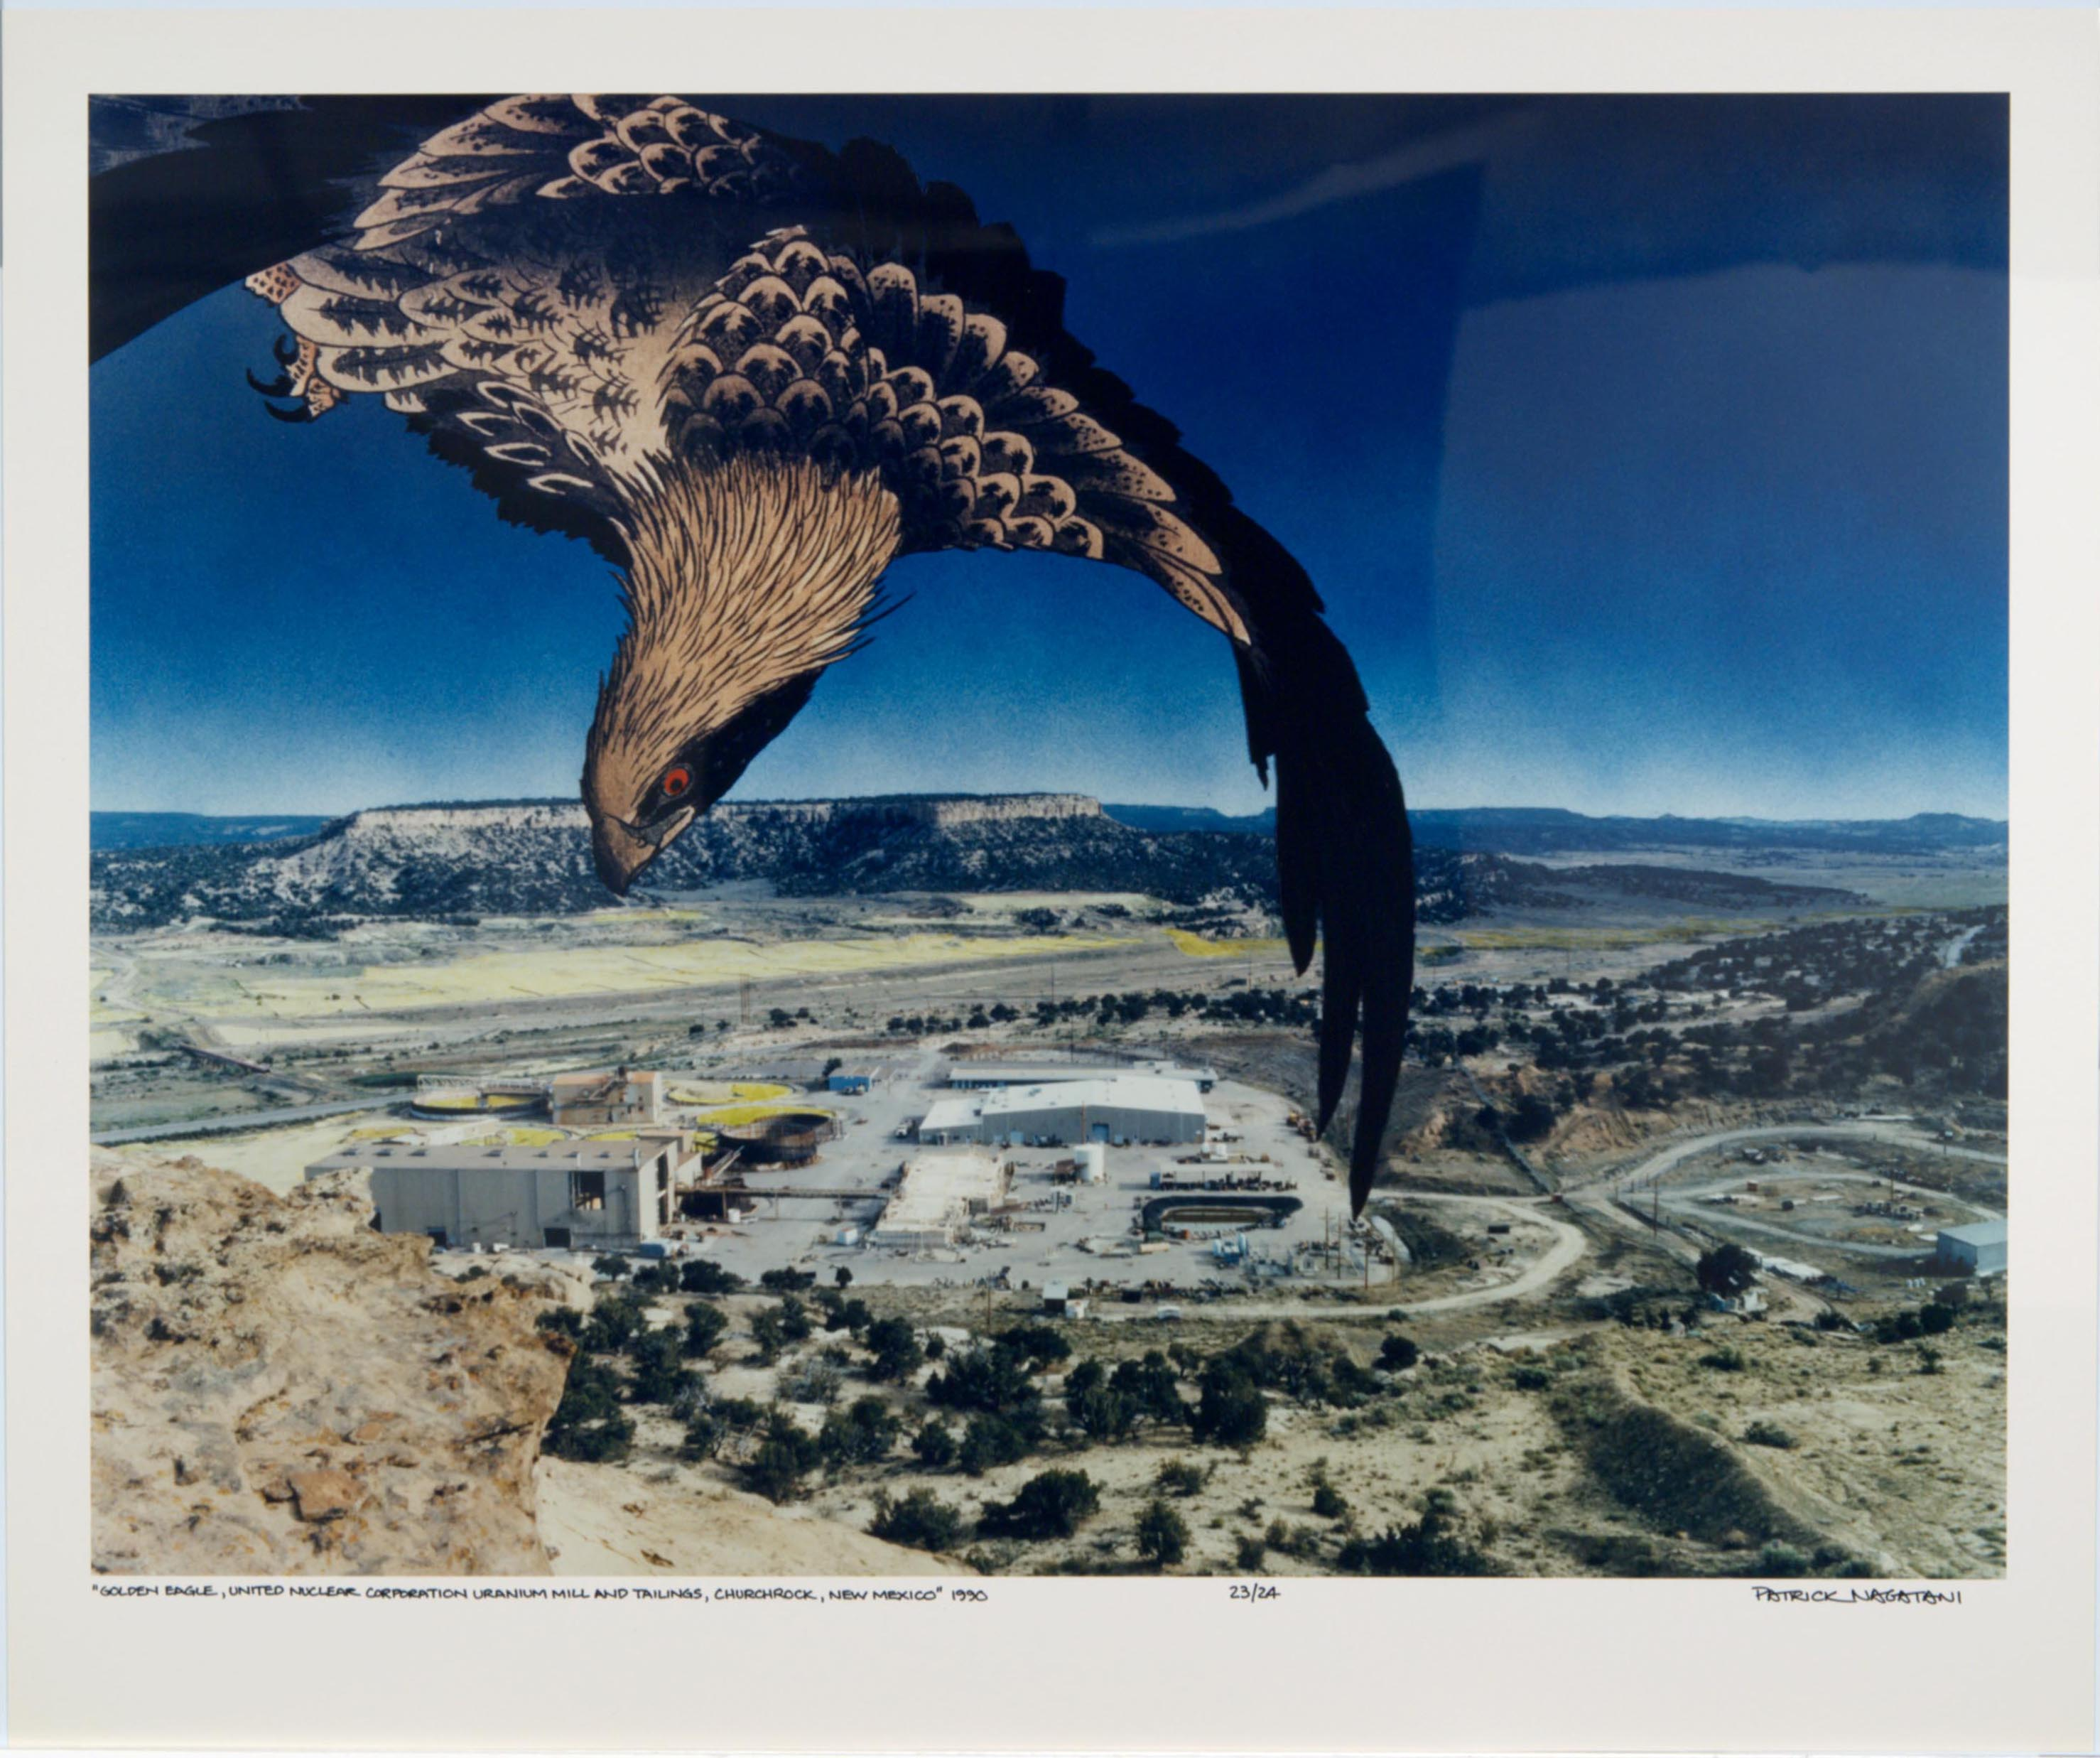 Patrick Nagatani, Golden Eagle, United Nuclear Corporation Uranium Mill and Tailings, Churchrock, New Mexico, 1991